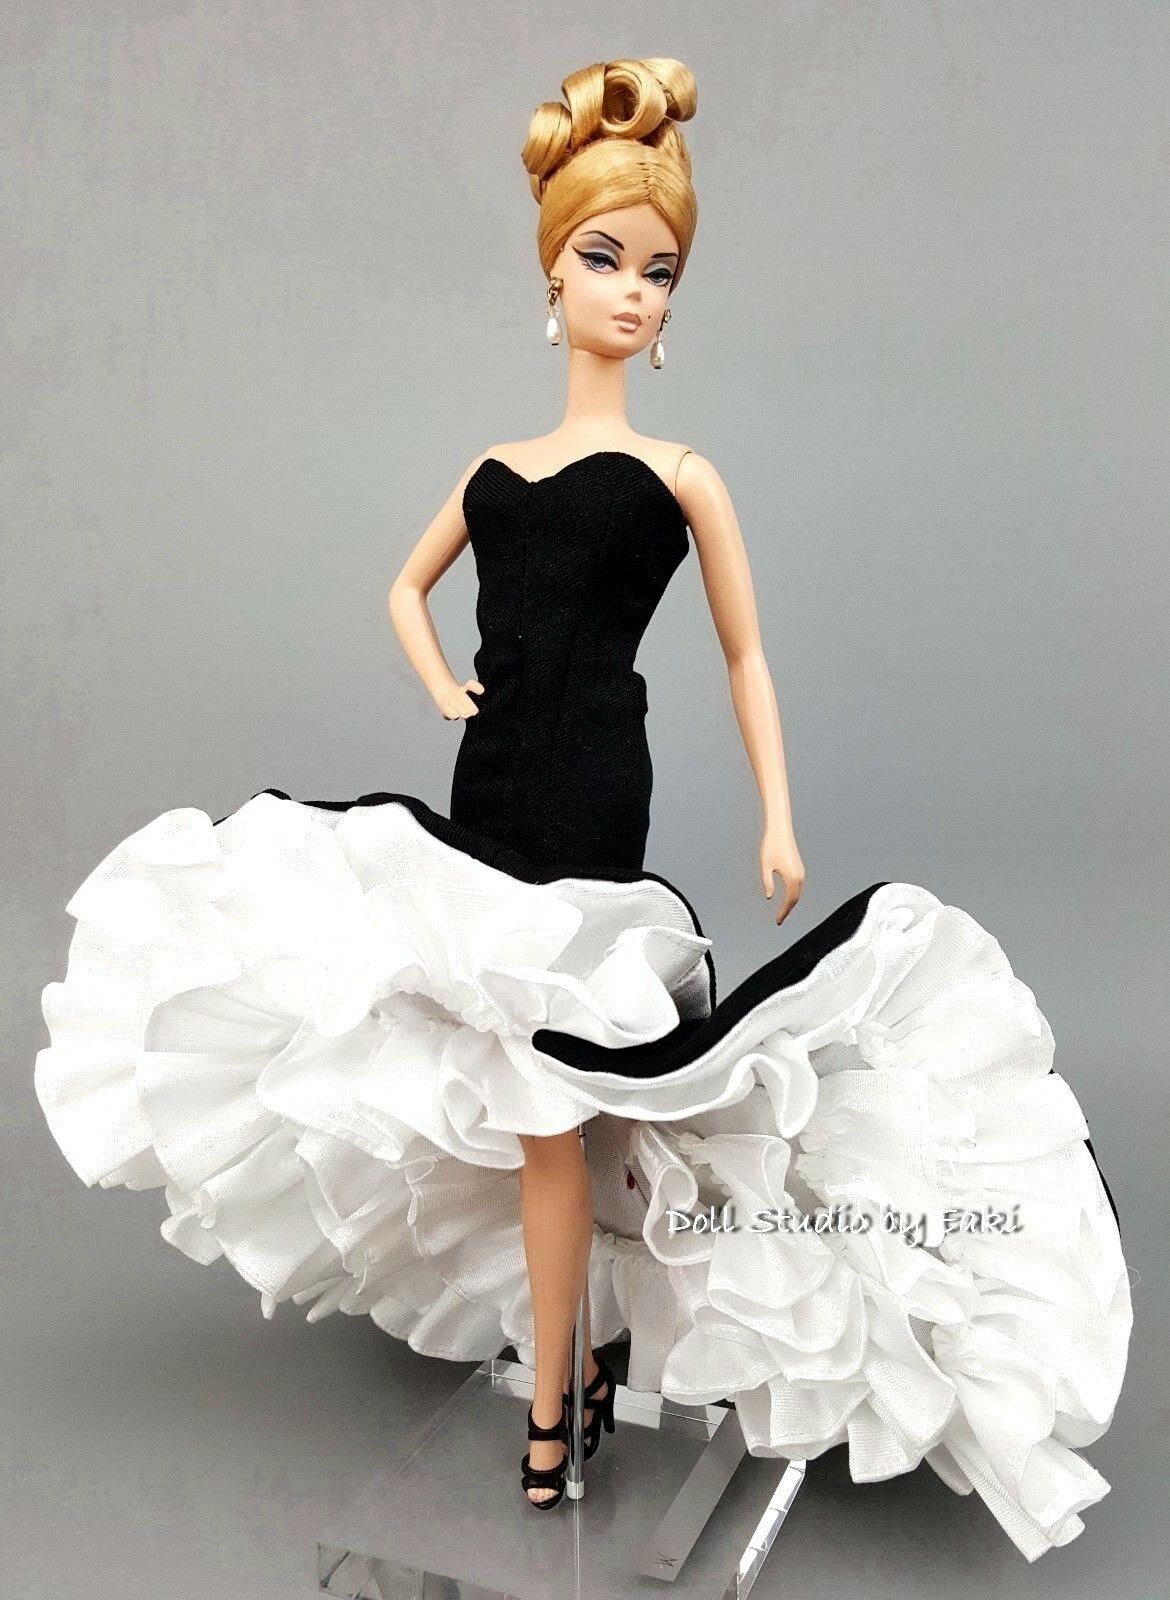 Bride White Lace Gown Evening Dress Outfit Barbie Silkstone Fashion Royalty FR